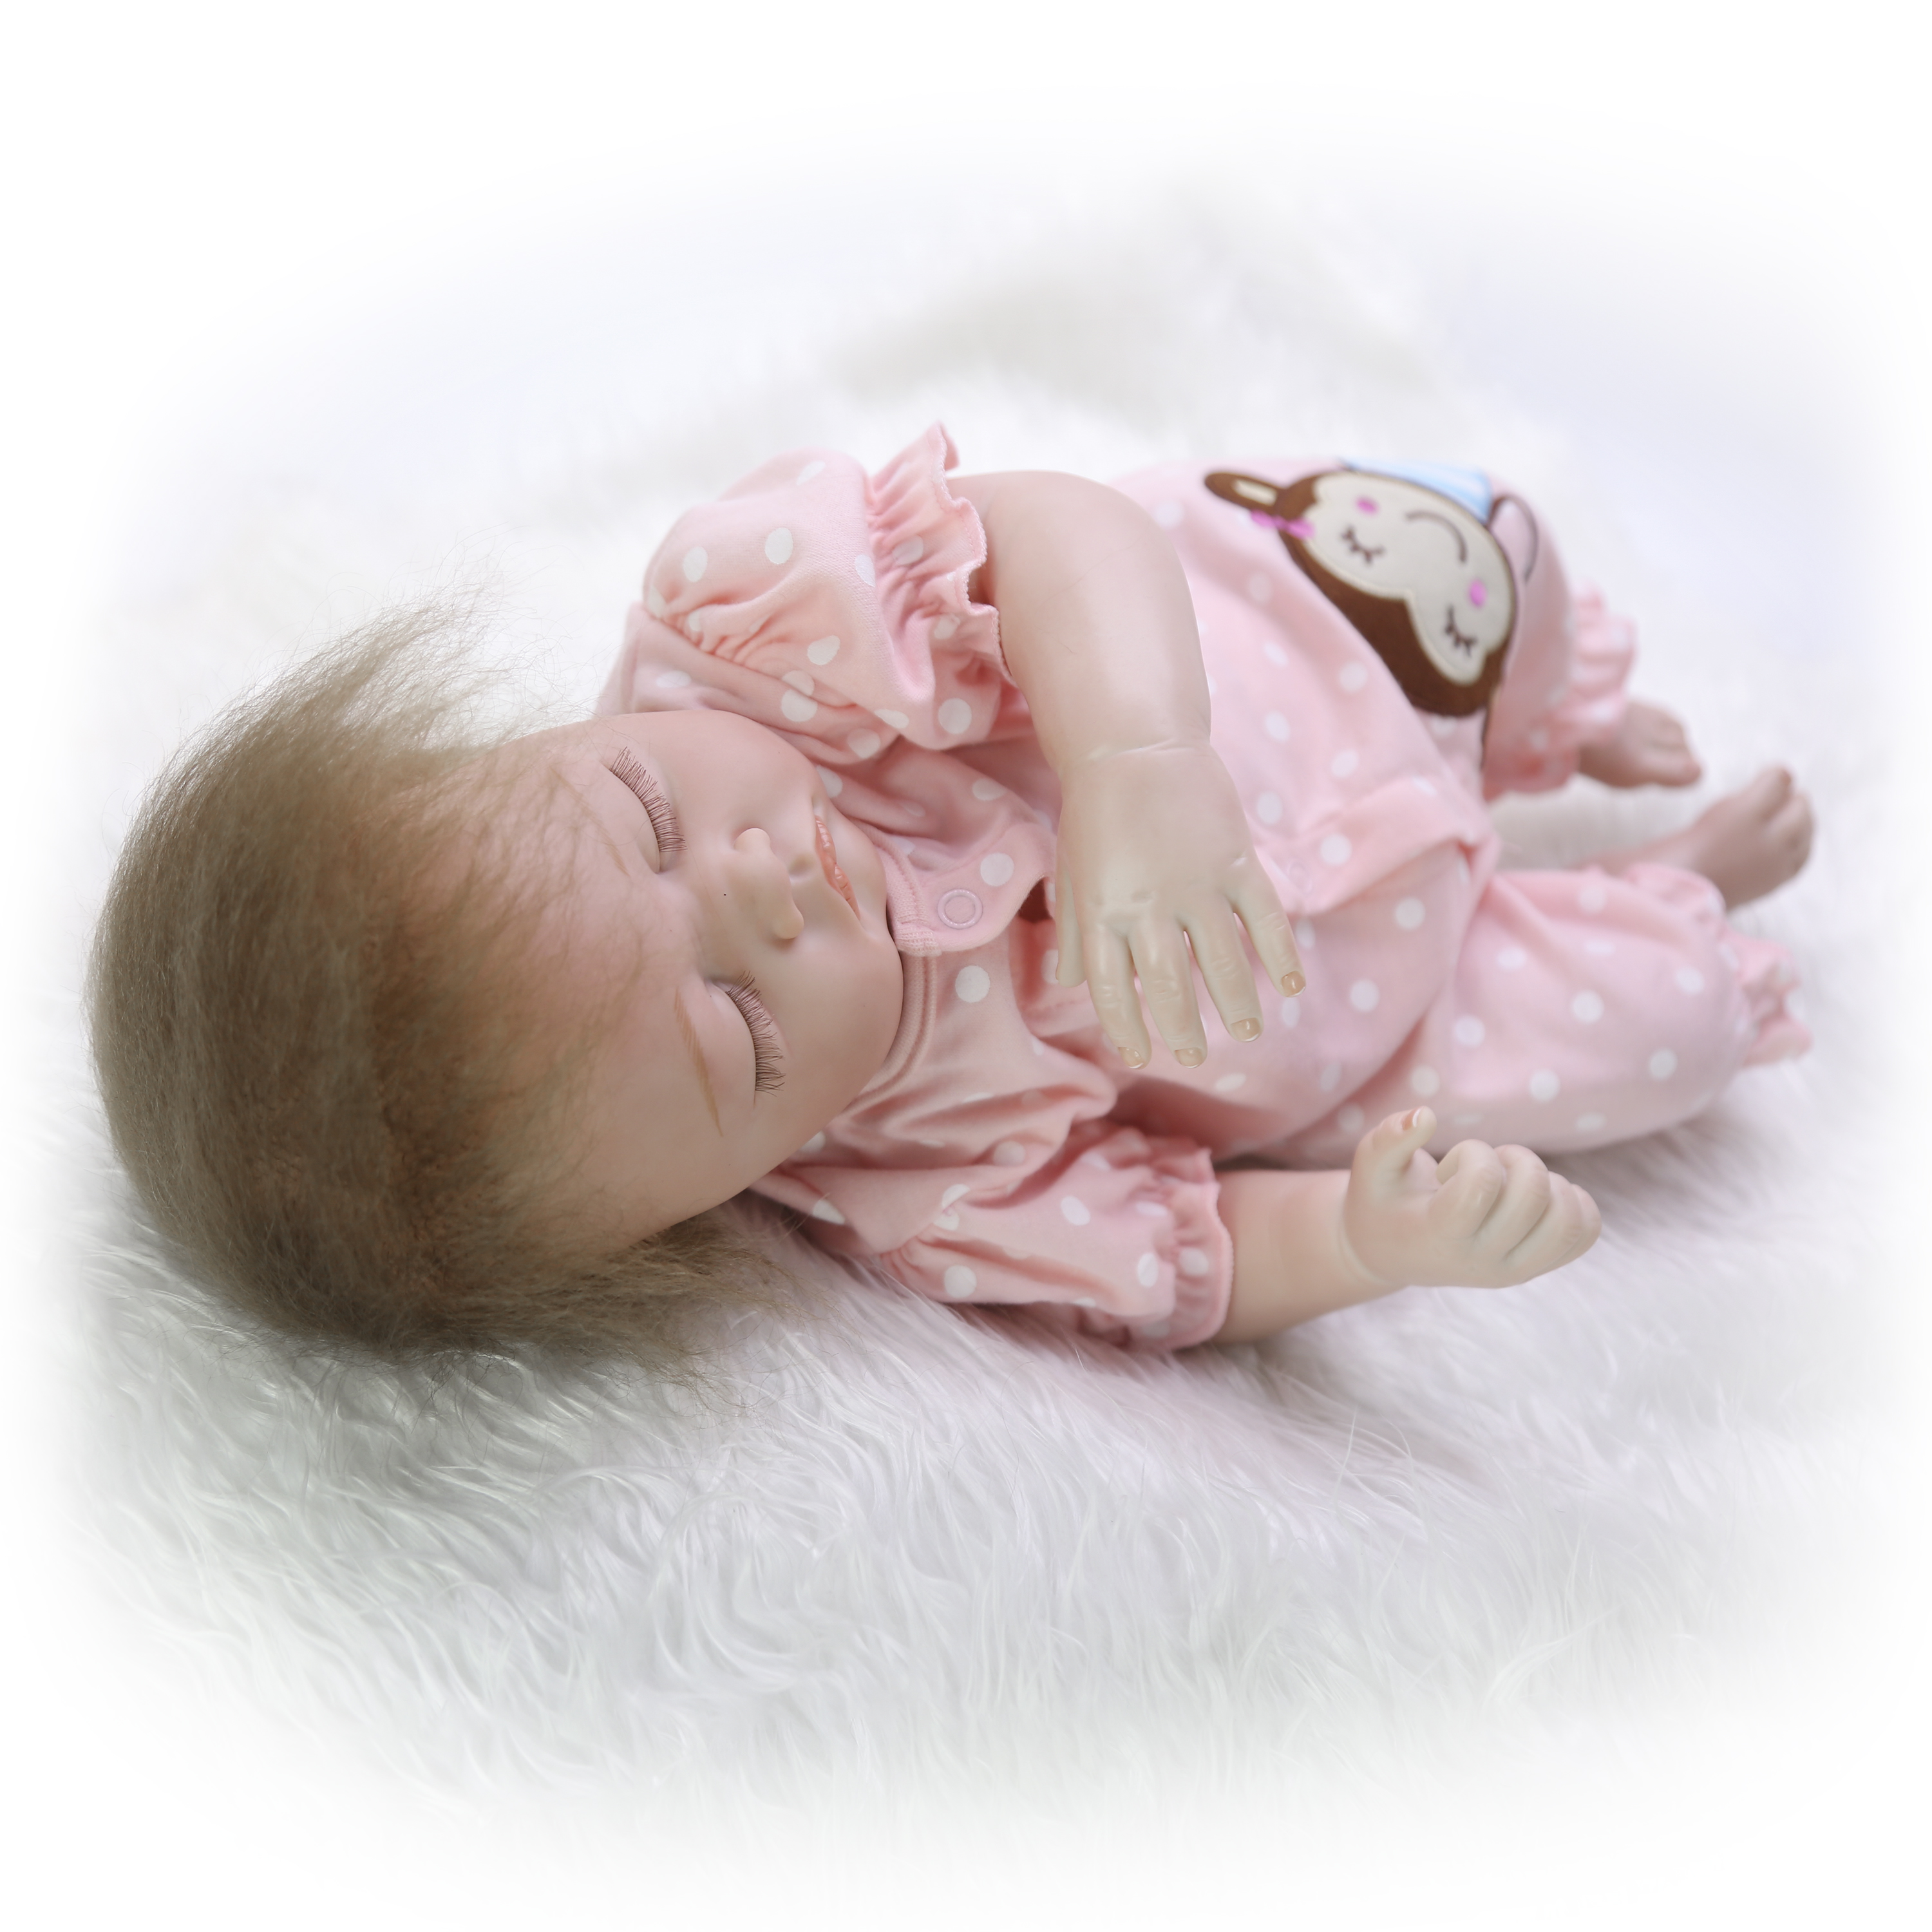 Real Lifelike Reborn Baby Doll 20 Inch Sleeping Princess Girl Babies Silicone Newborn Doll Toy With Curved Mohair Kids Playmate-in Muñecas from Juguetes y pasatiempos    3